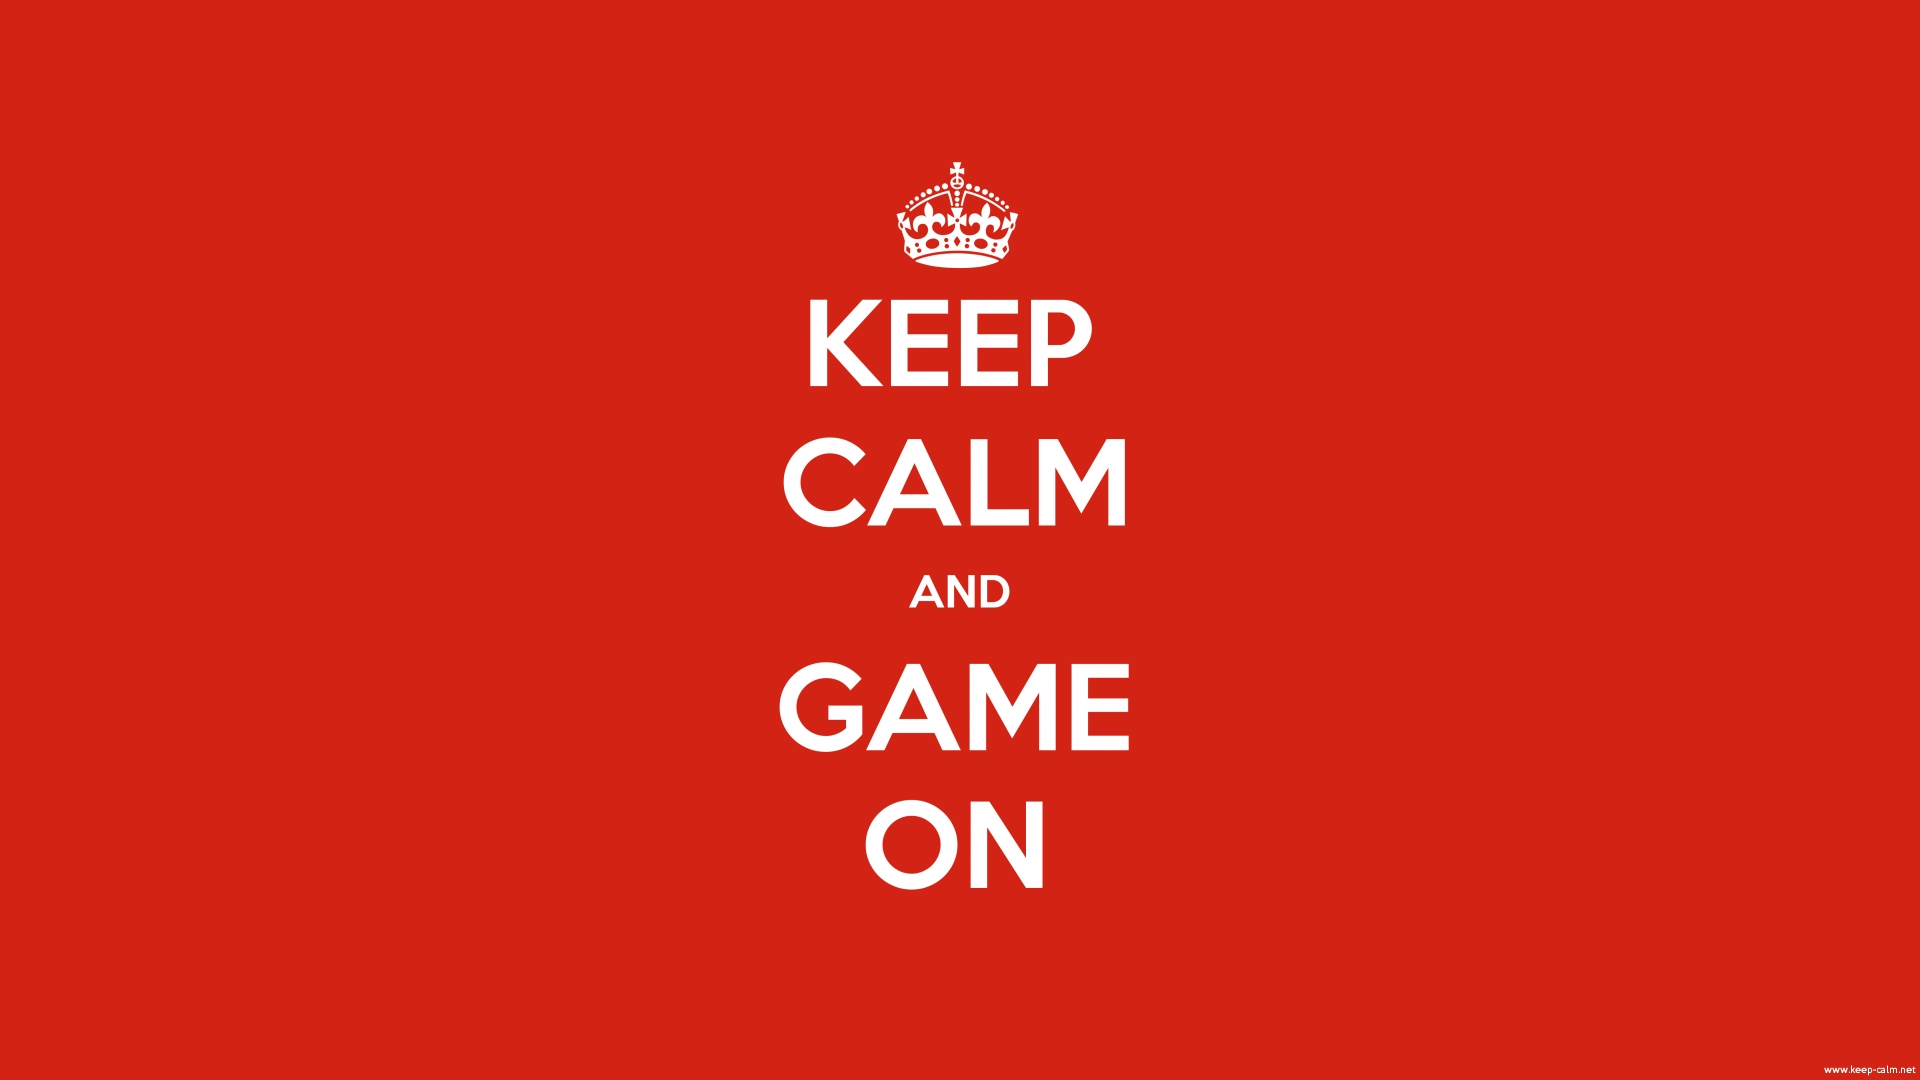 Beautiful Wallpapers With Lovely Quotes Download Keep Calm And Game On Wallpaper Gallery